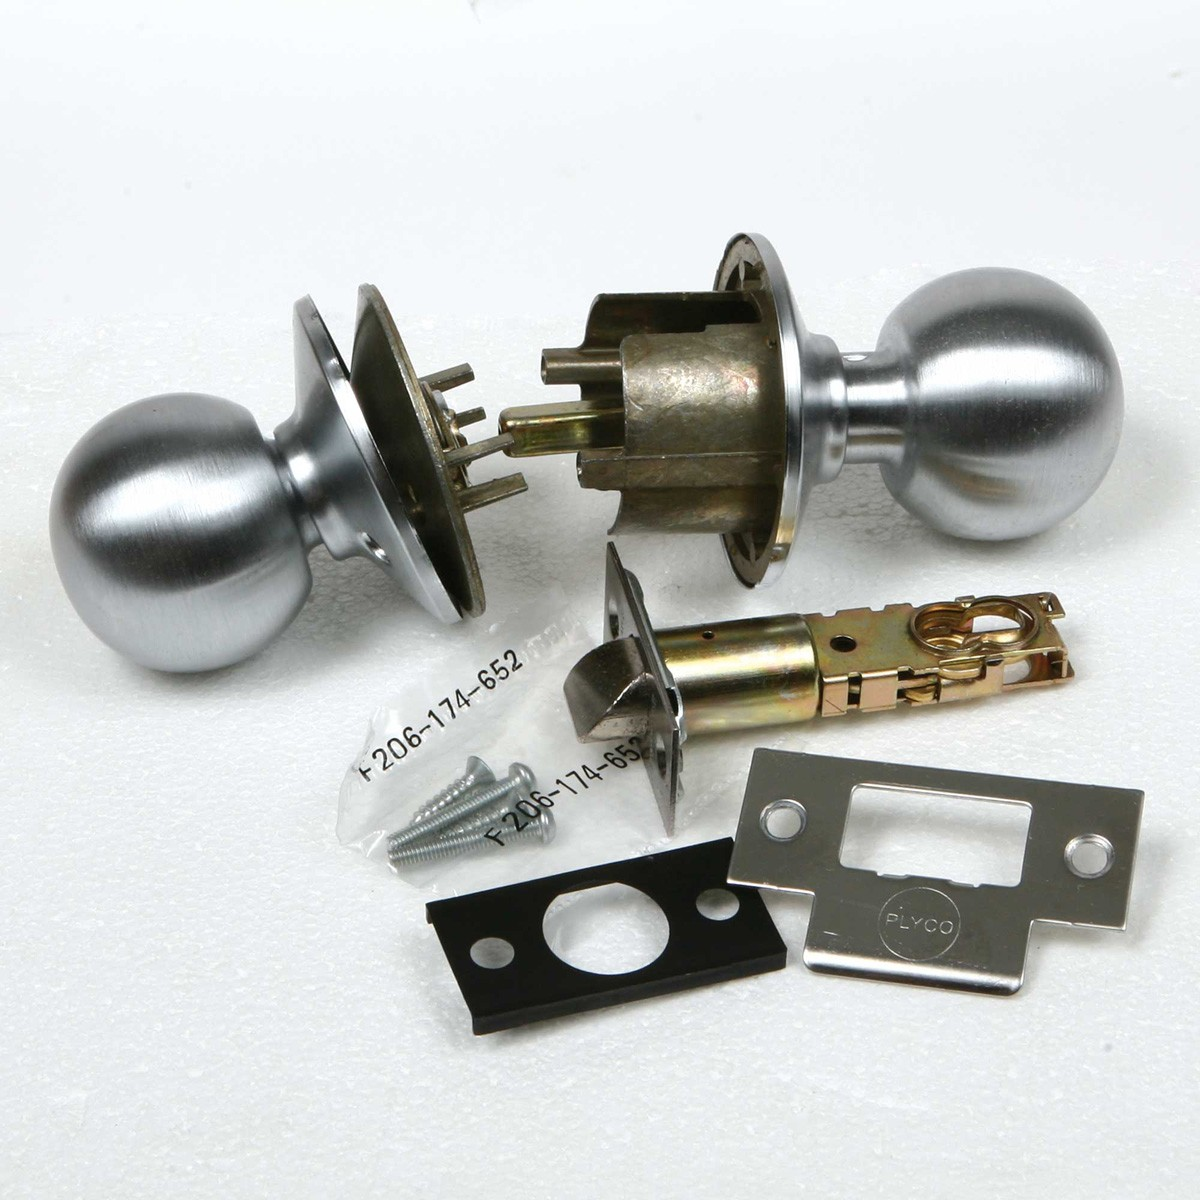 parts of a door knob photo - 6